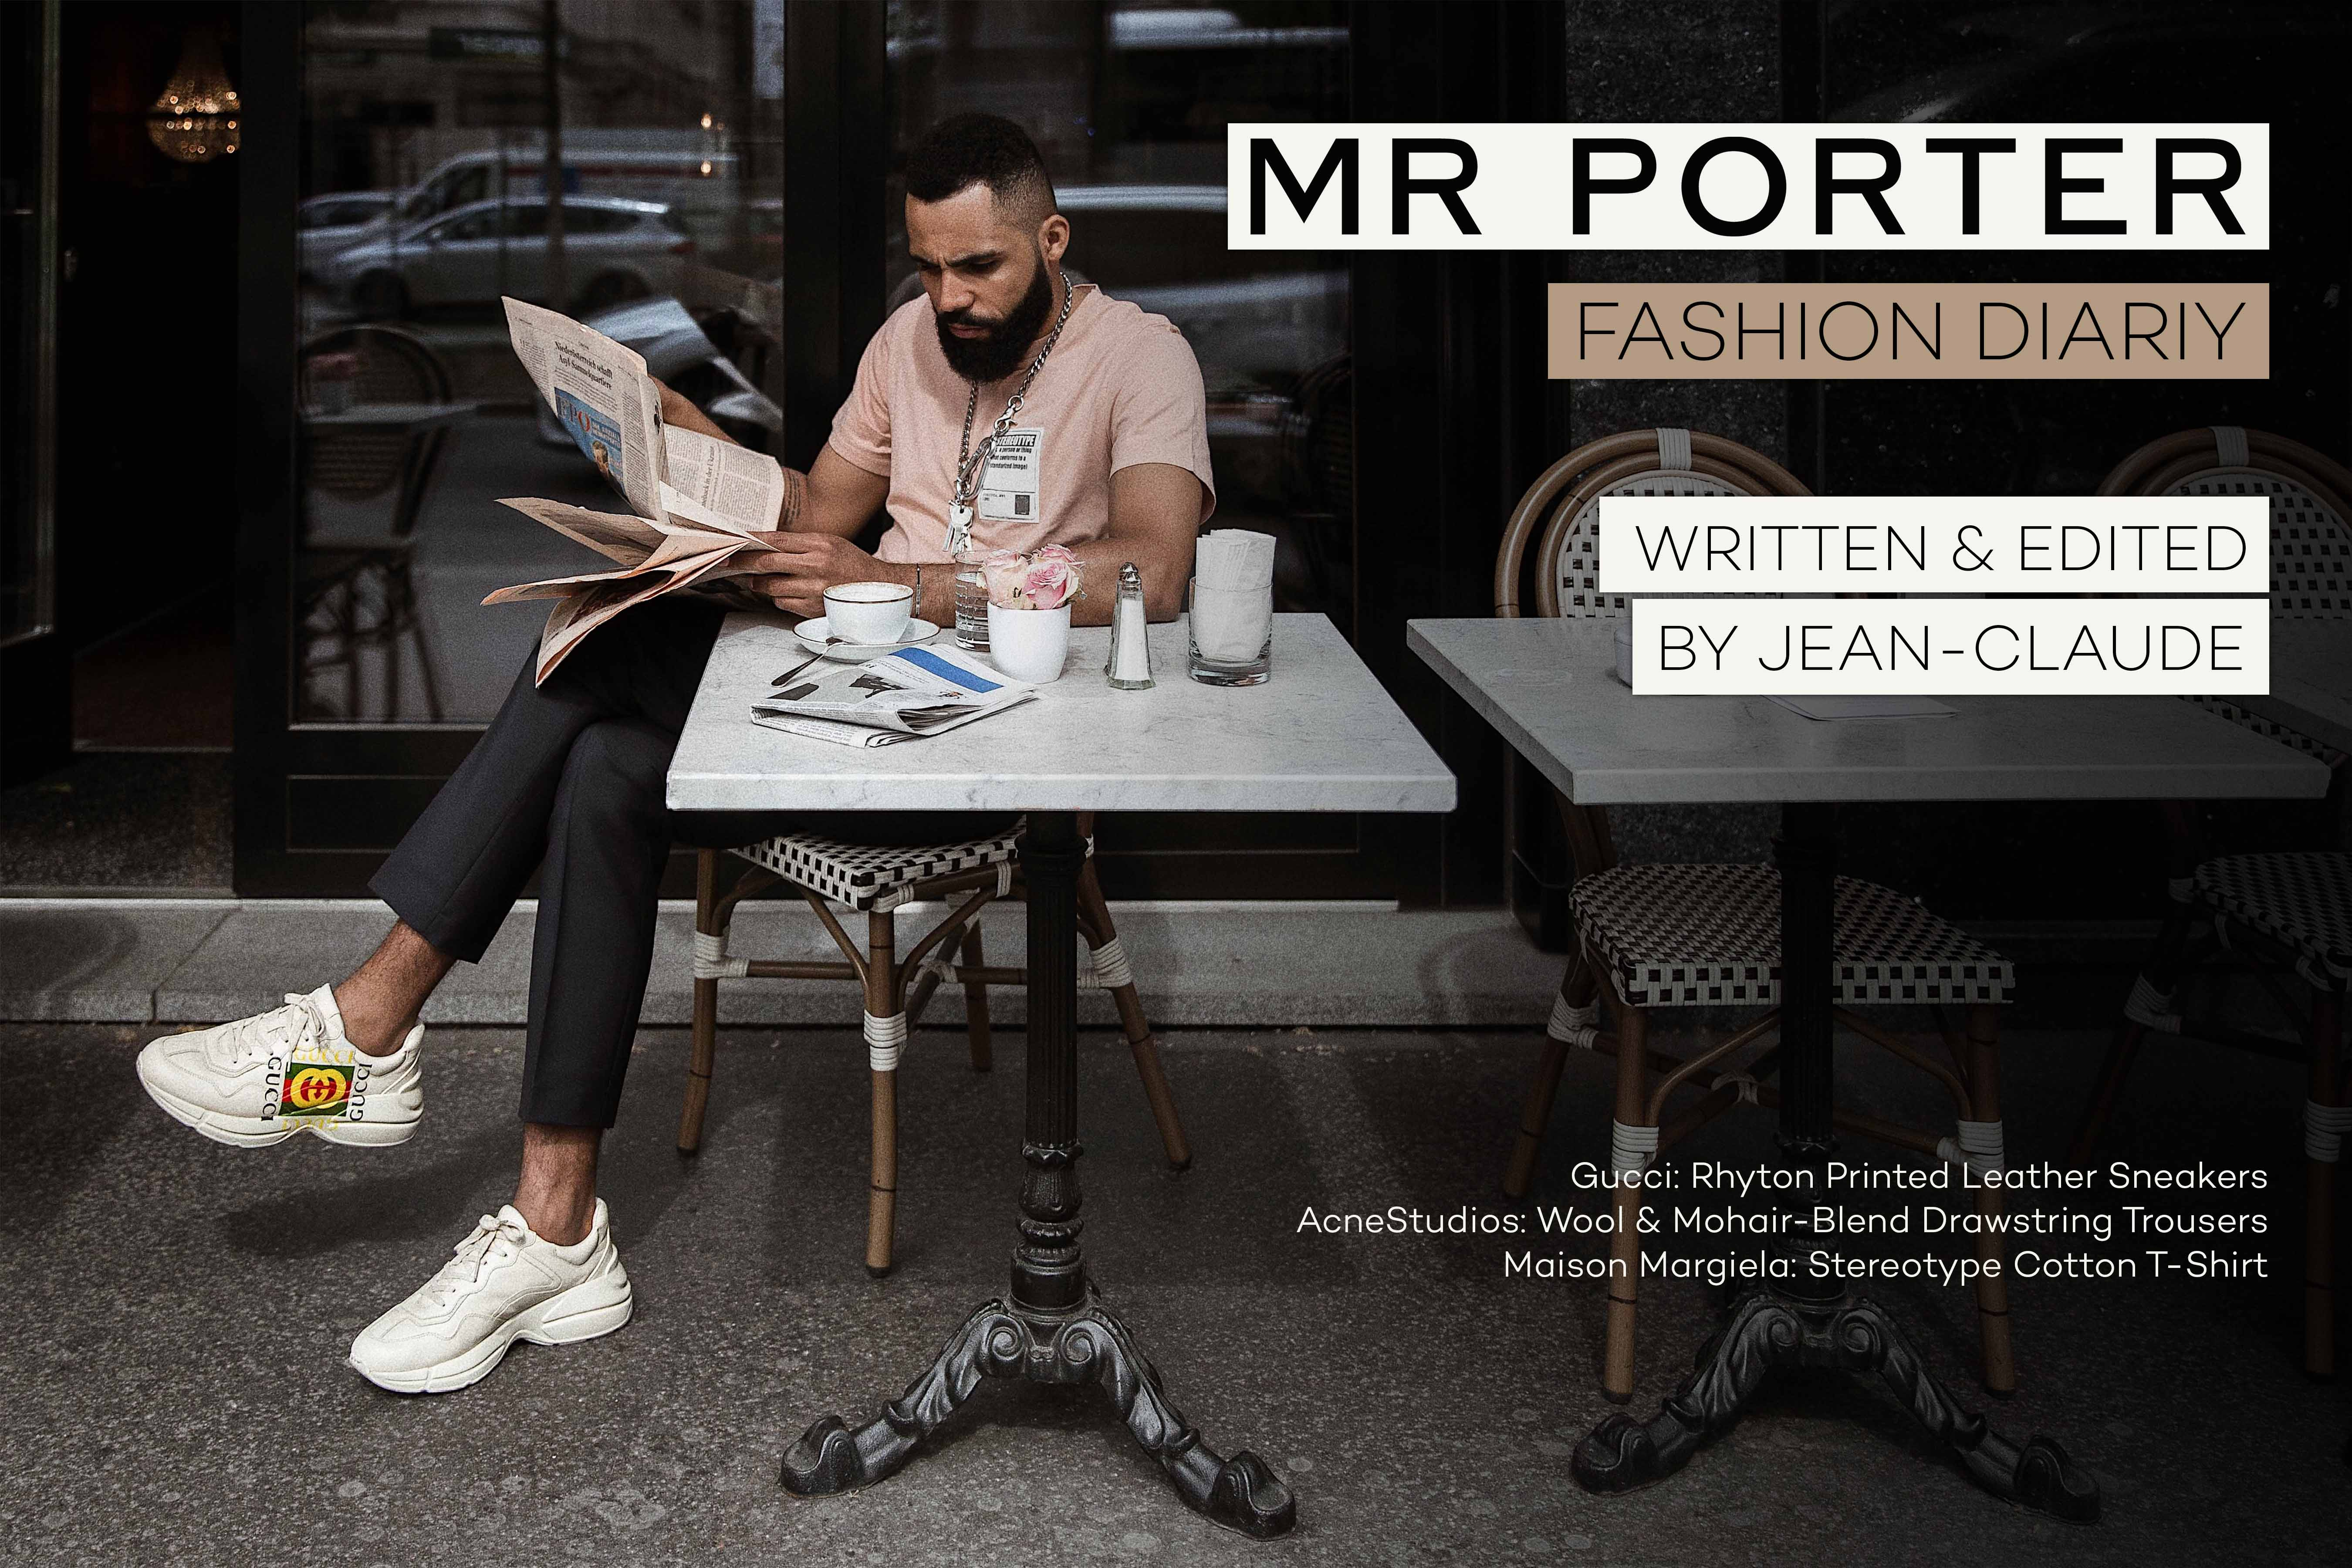 Mr-Porter-Diary-be-New-kiss-on-the-blog